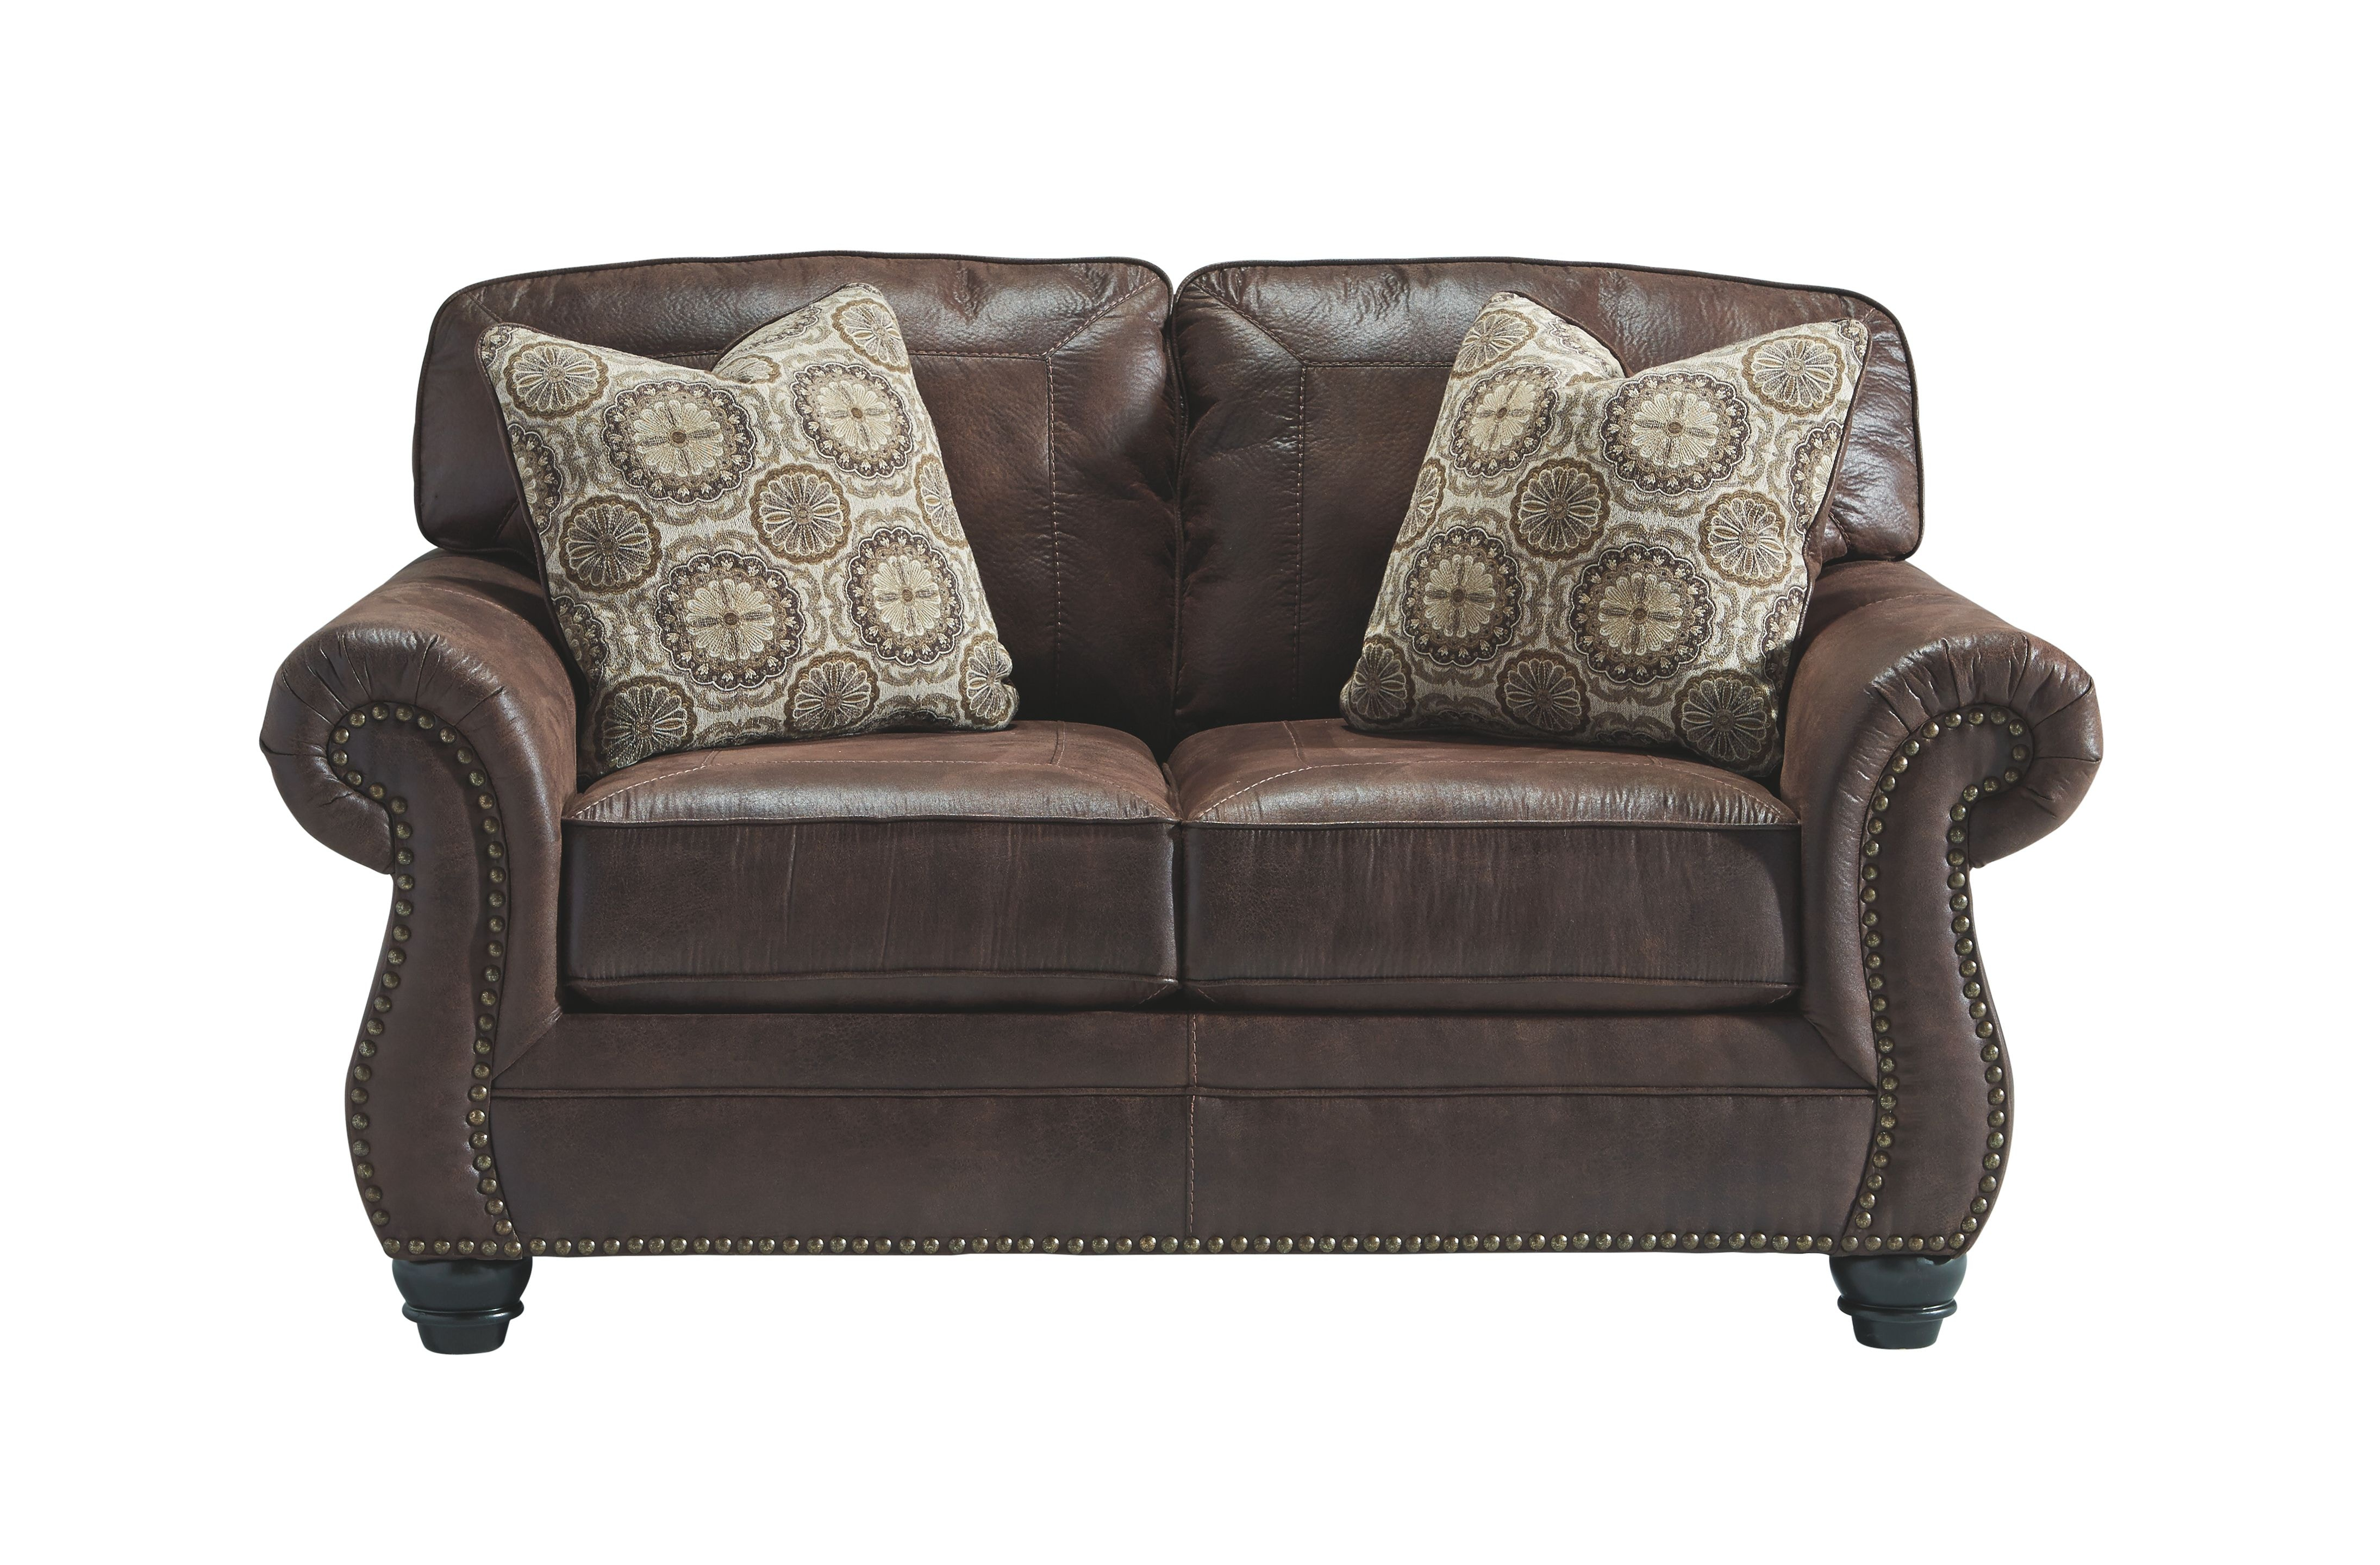 sofas unlimited mechanicsburg pa chenille sofa throws uk signature design by ashley living room loveseat 8000335 ...